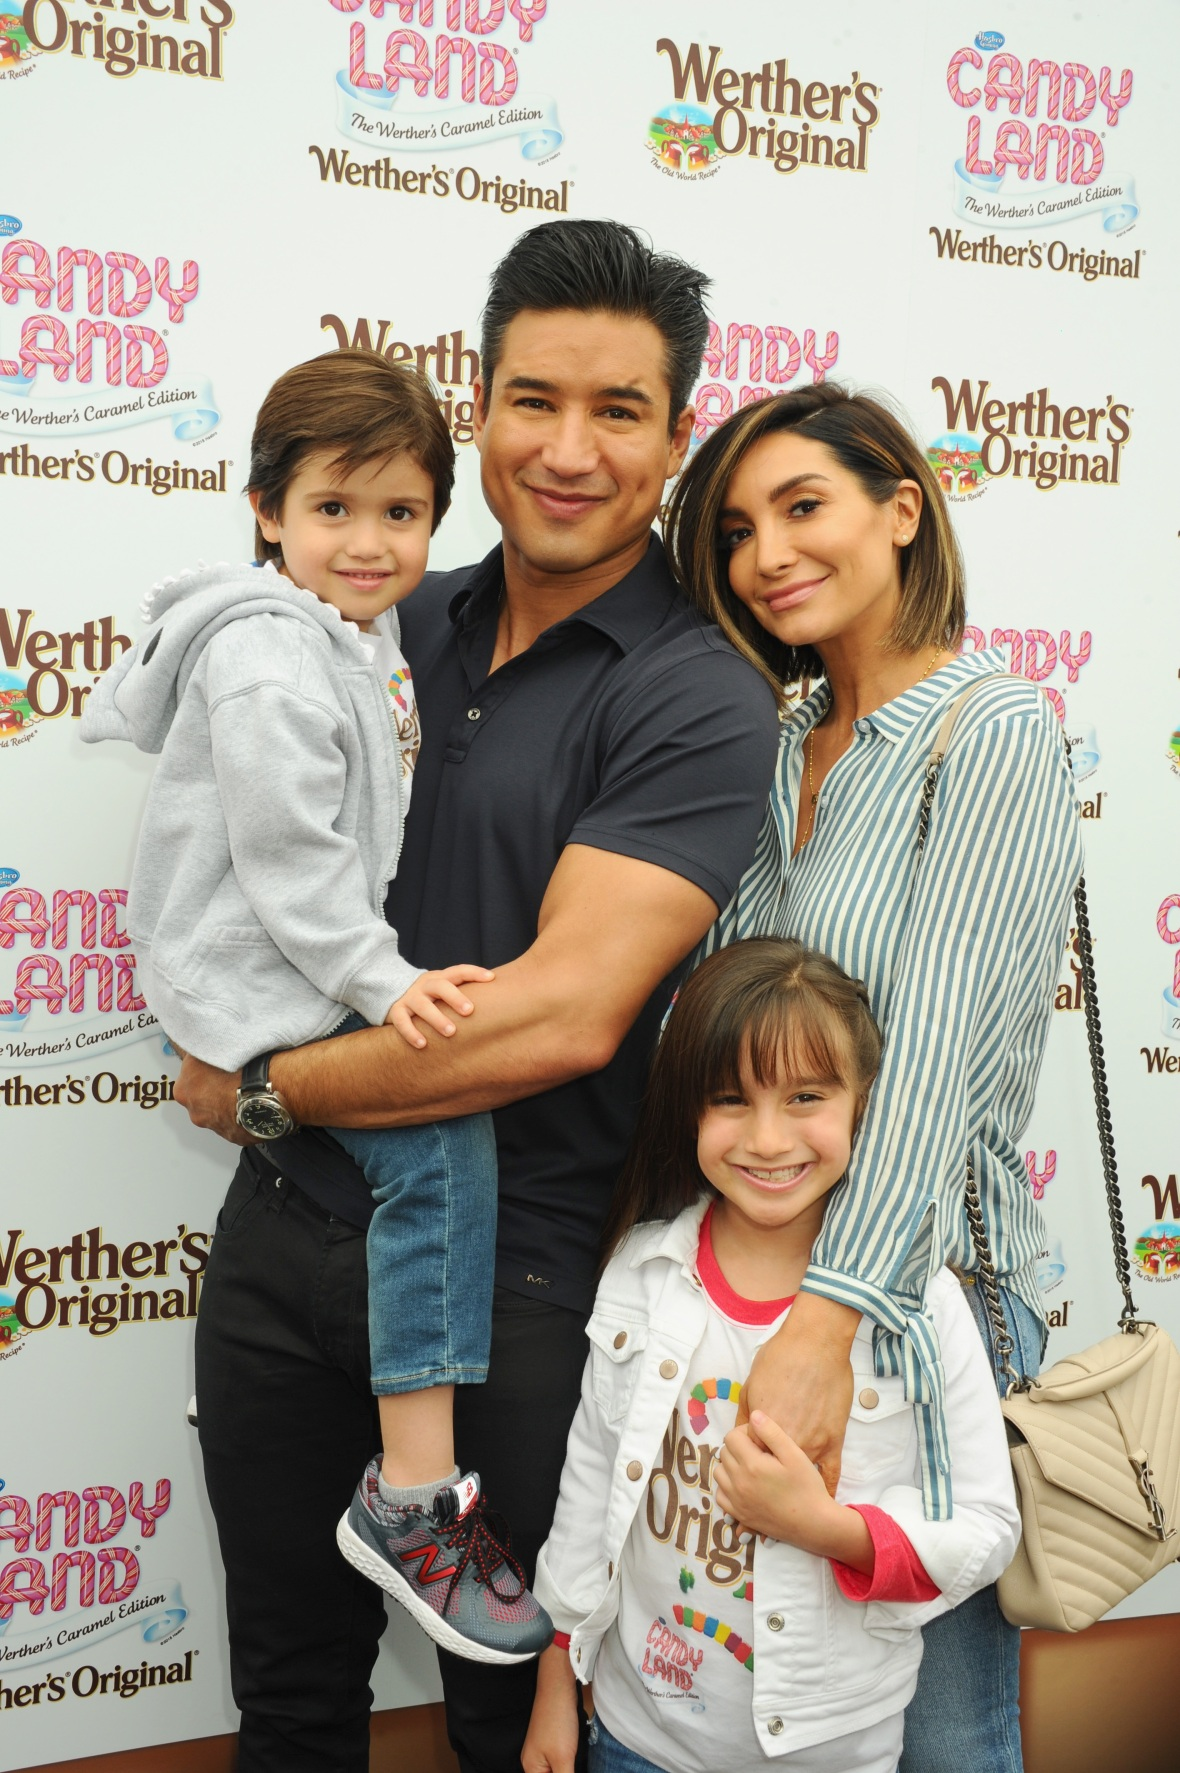 mario lopez's family getty images